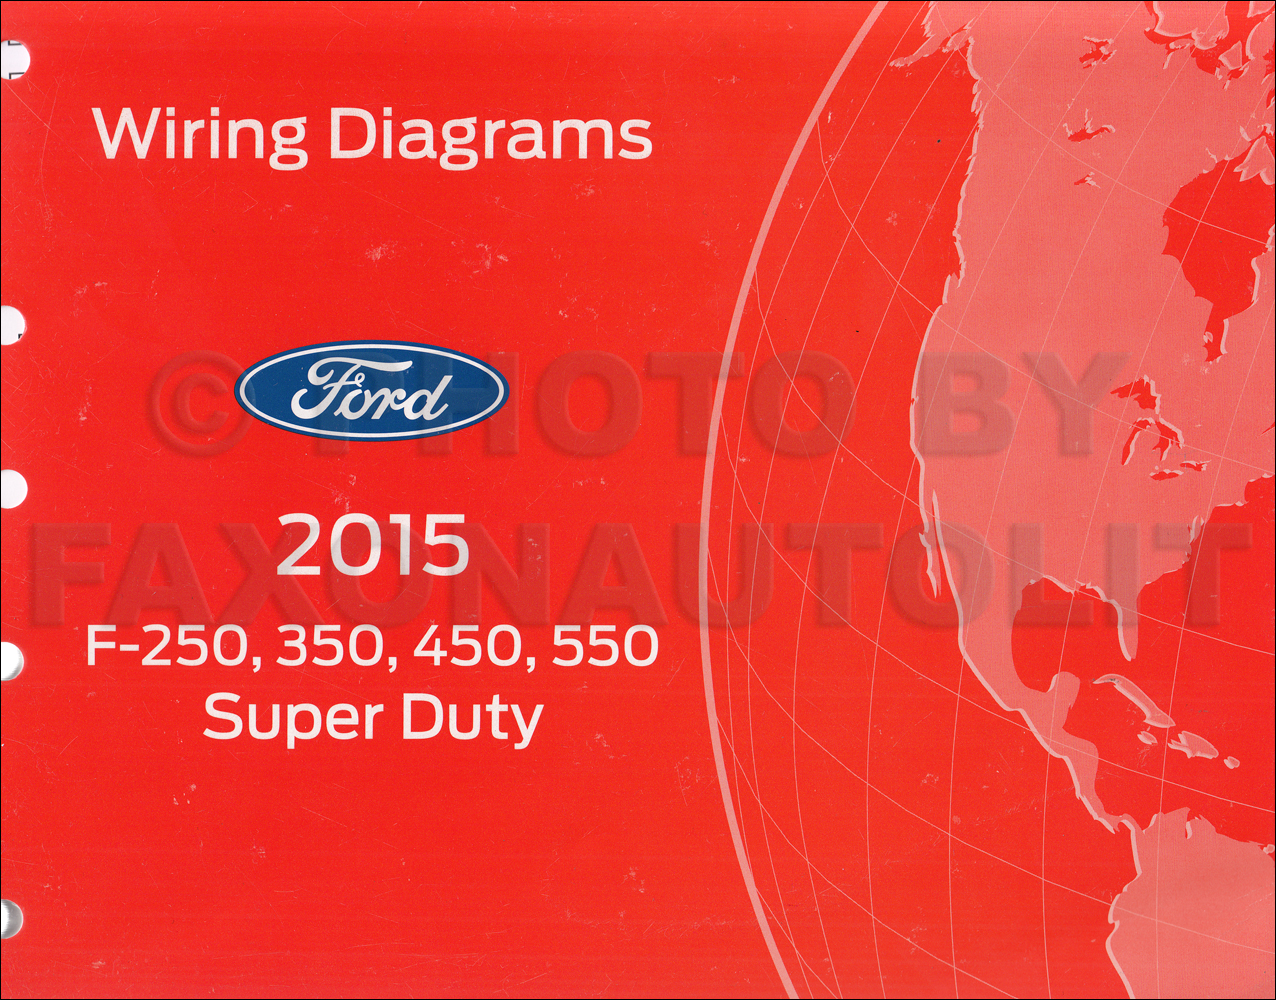 hight resolution of 2015 ford f250 f550 super dutytruck wiring diagram manual original 2015 ford f250 upfitter switch wiring diagram 2015 ford f250 wiring diagram